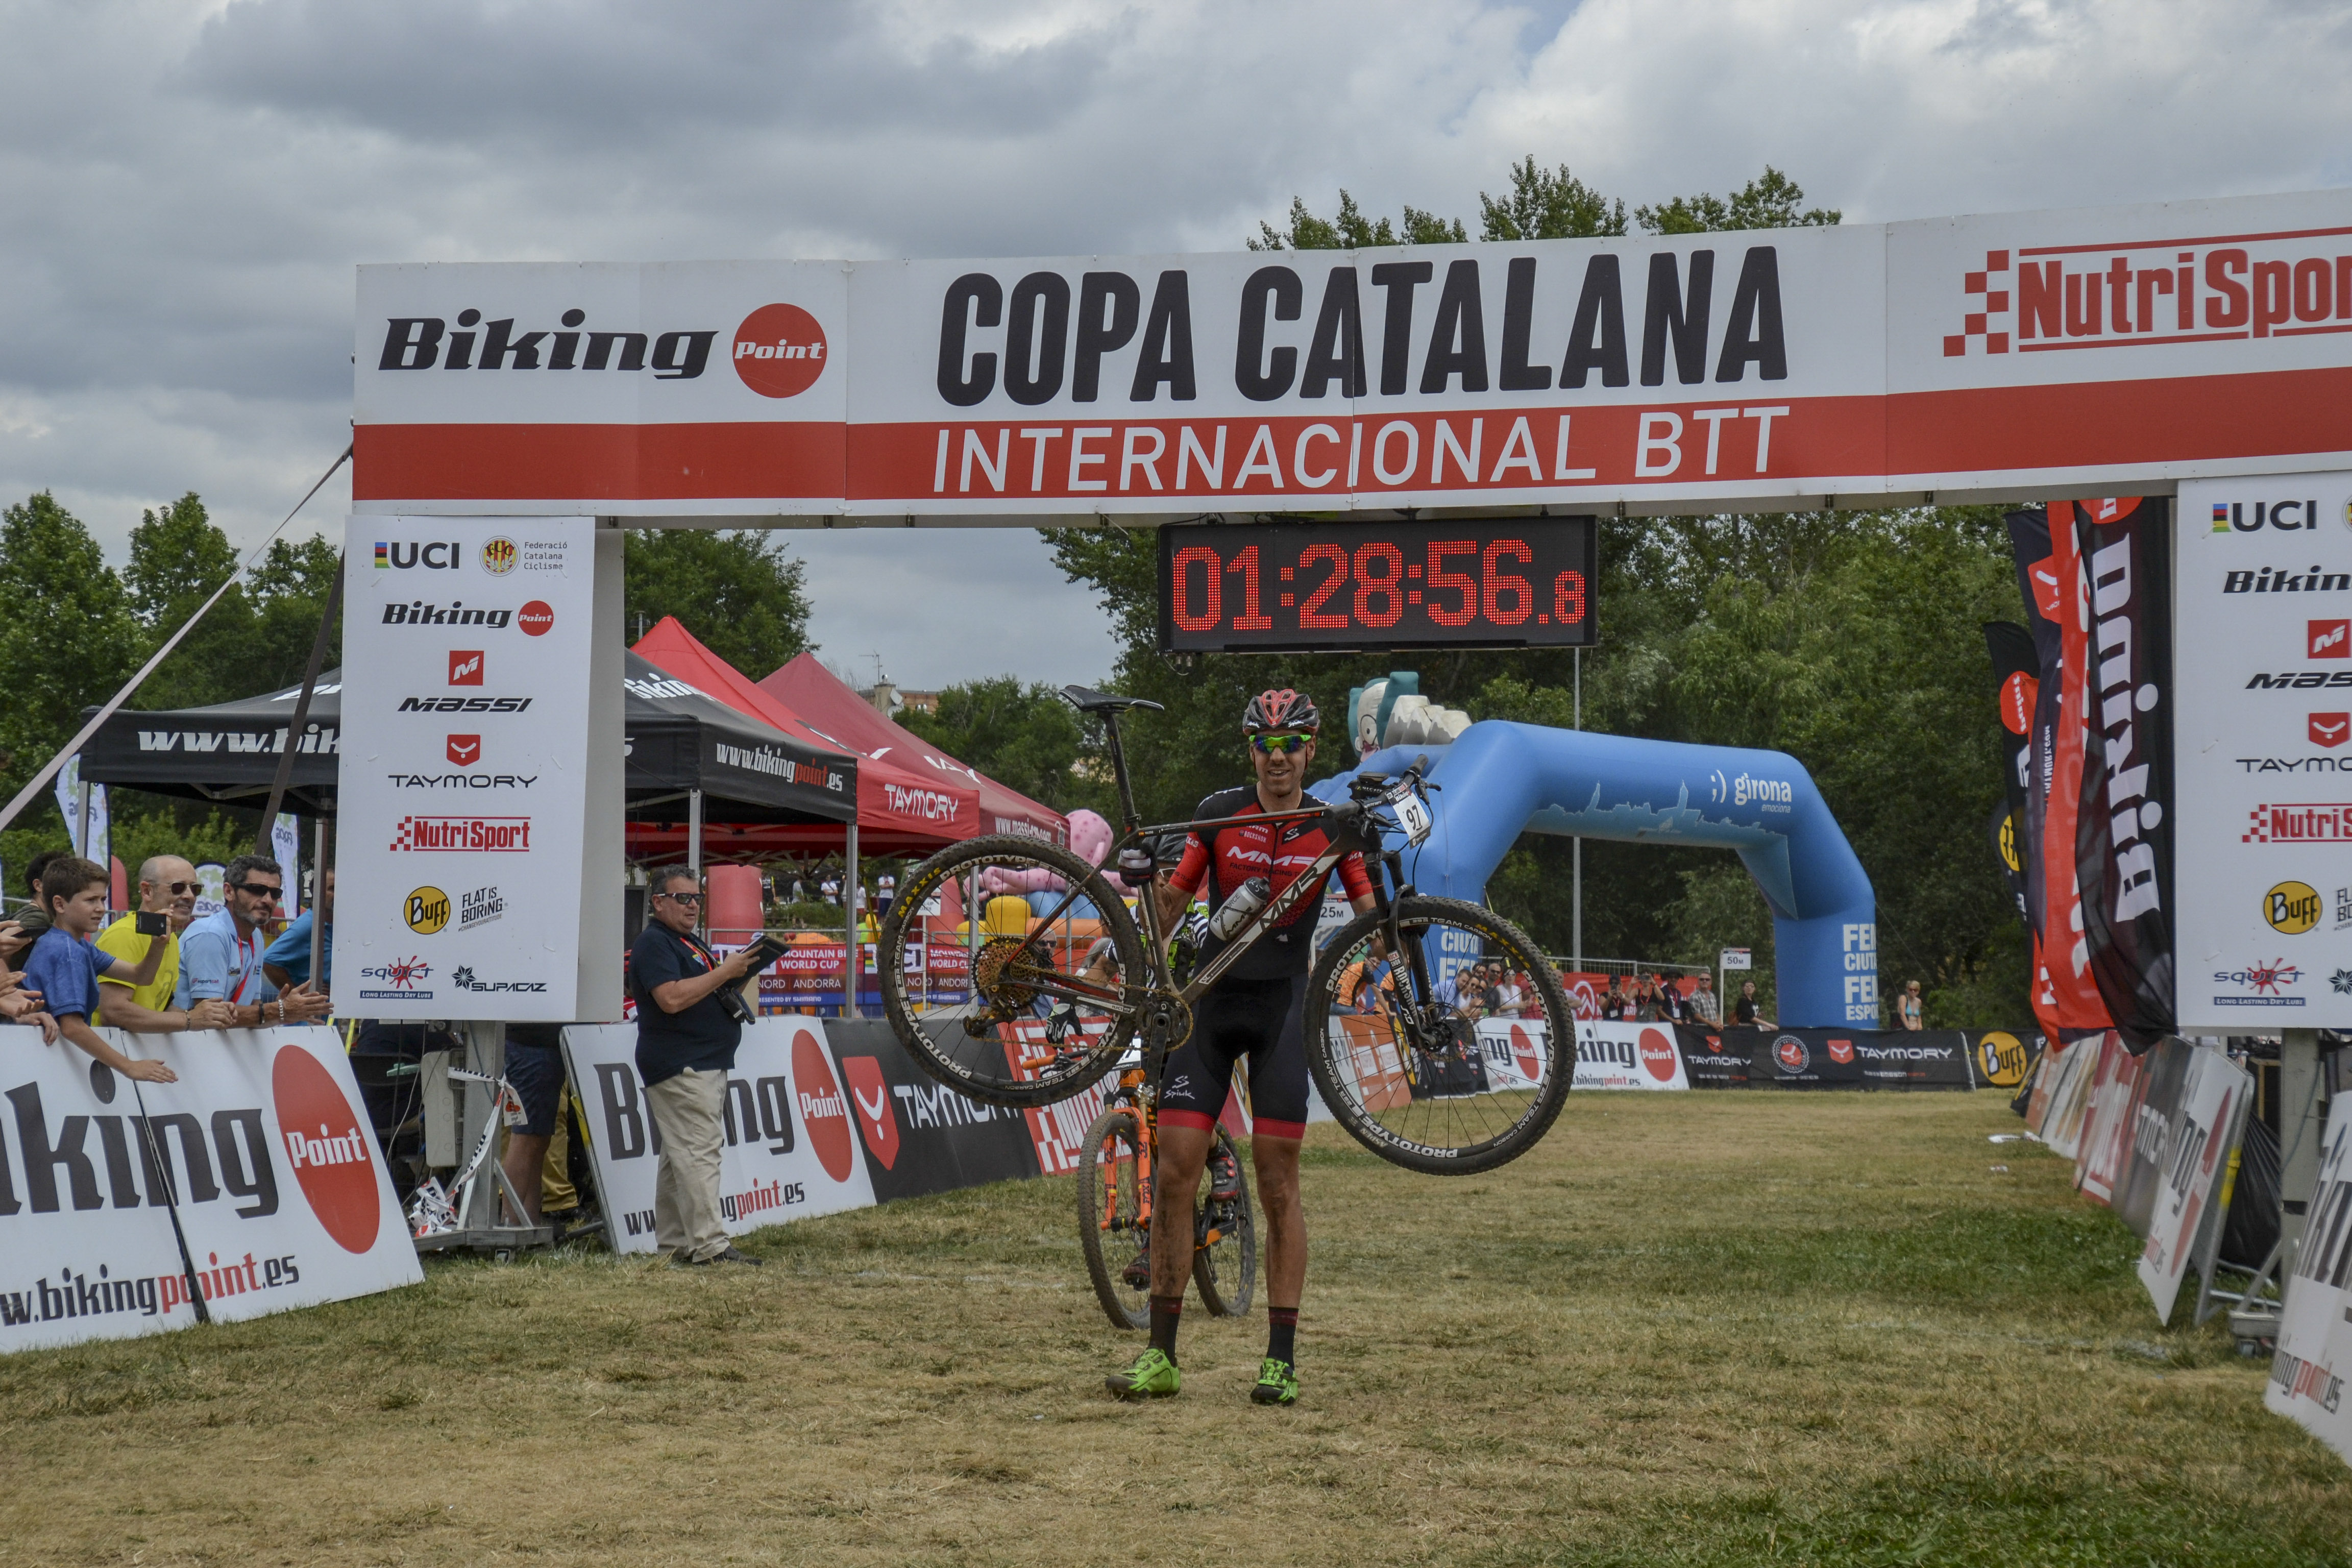 David Valero reafirma el seu gran moment conquistant la Copa Catalana Internacional BTT Biking Point de Sea Otter Europe